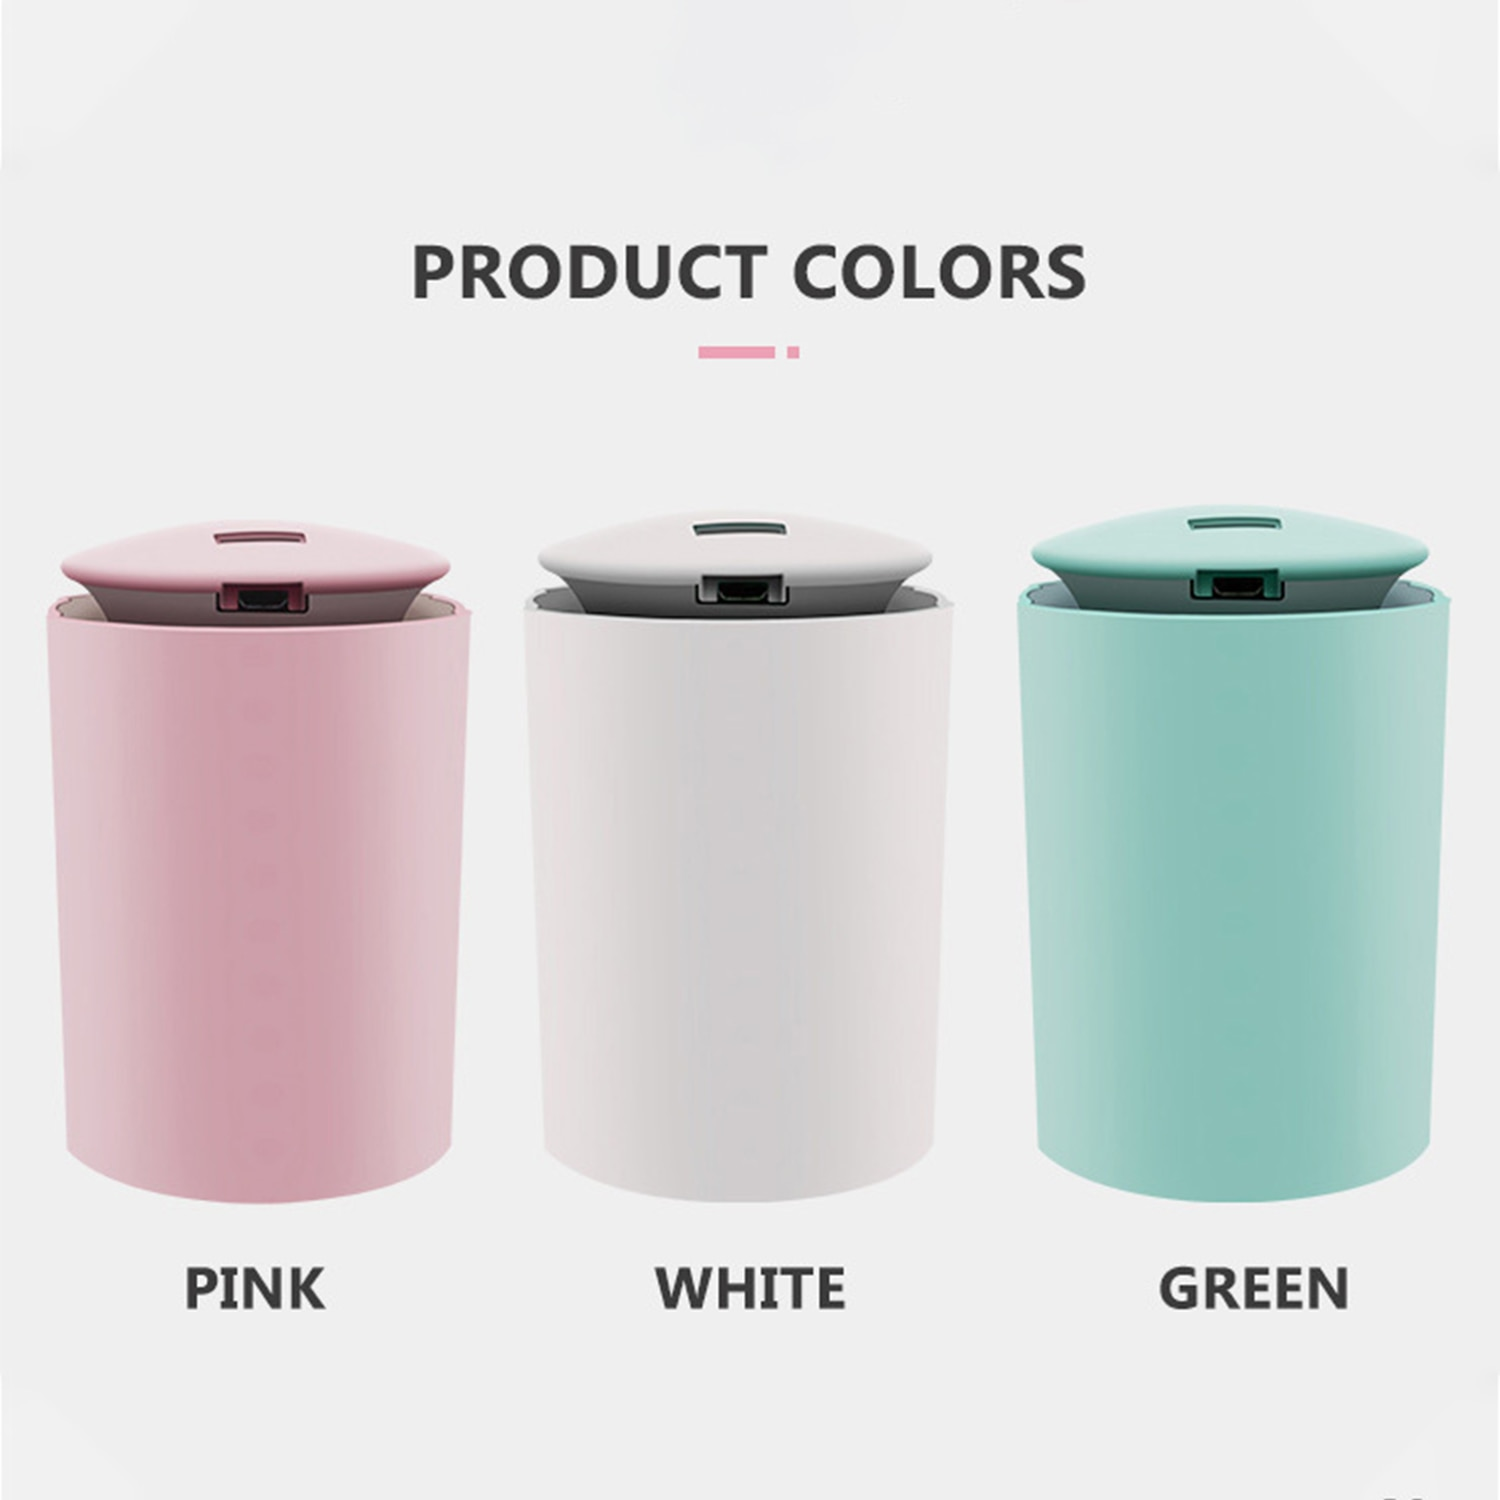 260mL Mist Air Humidifier Diffuser with LED Light Quiet Car Humidifier Essential Oil Diffuser for Bedroom USB aroma diffuser